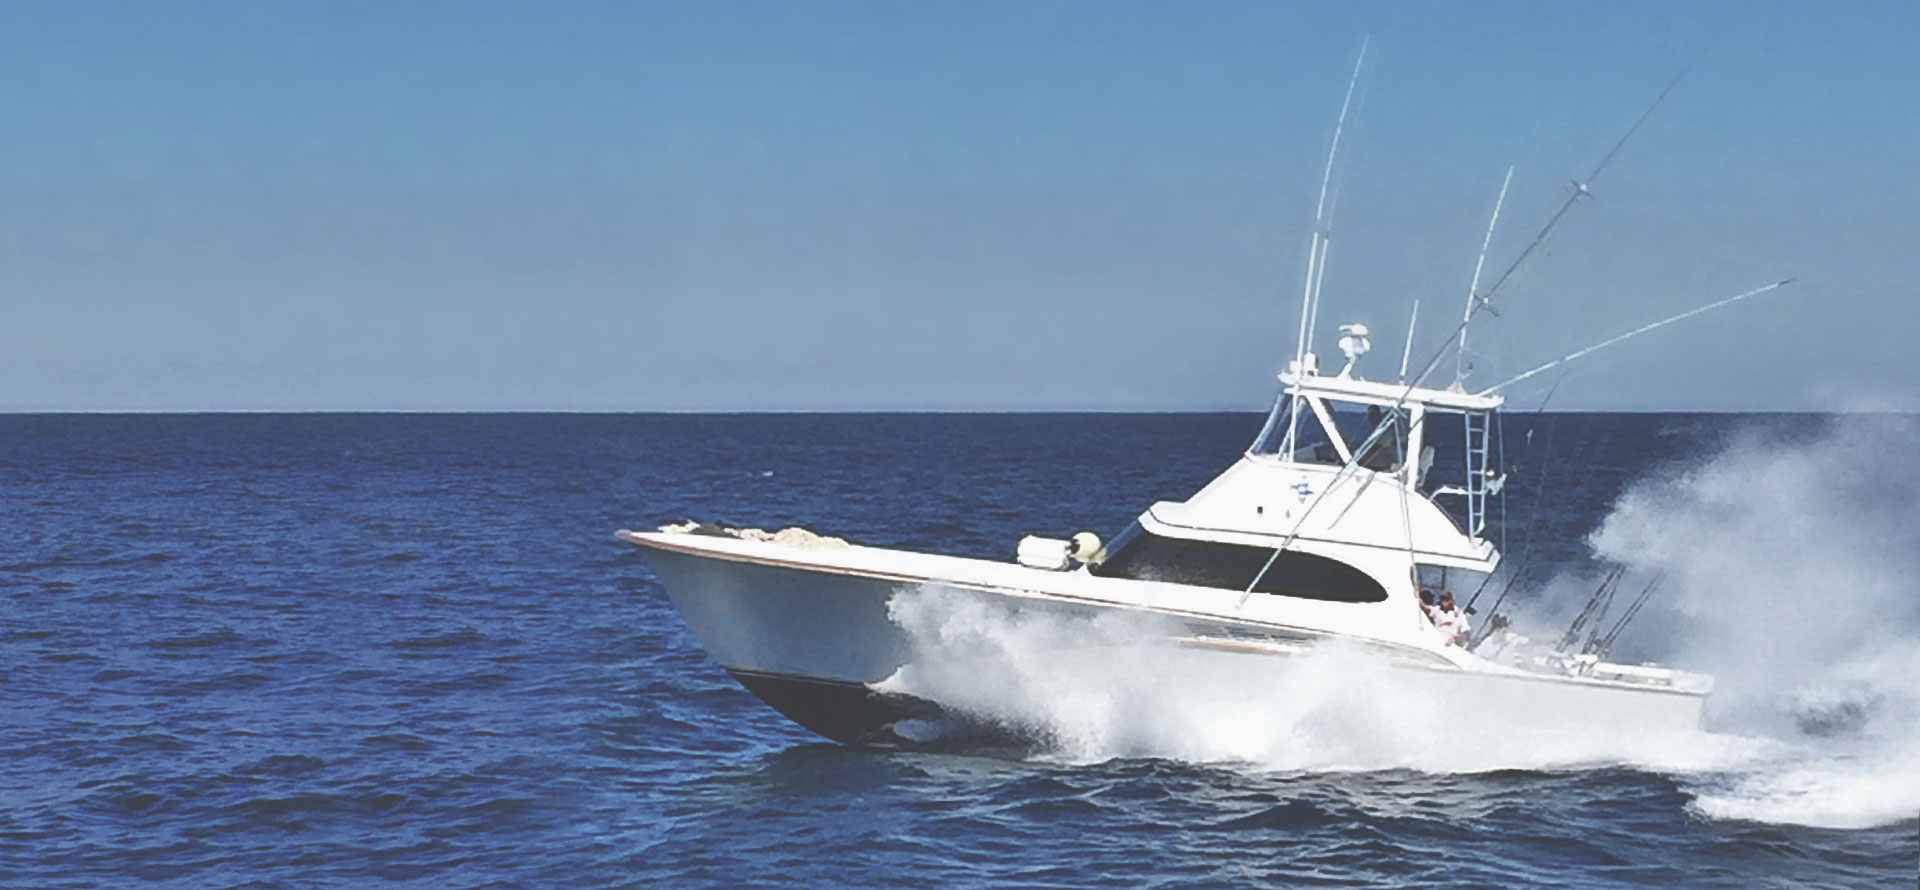 J hook luxury fishing chartersavailable fishing charters for Charter fishing trip